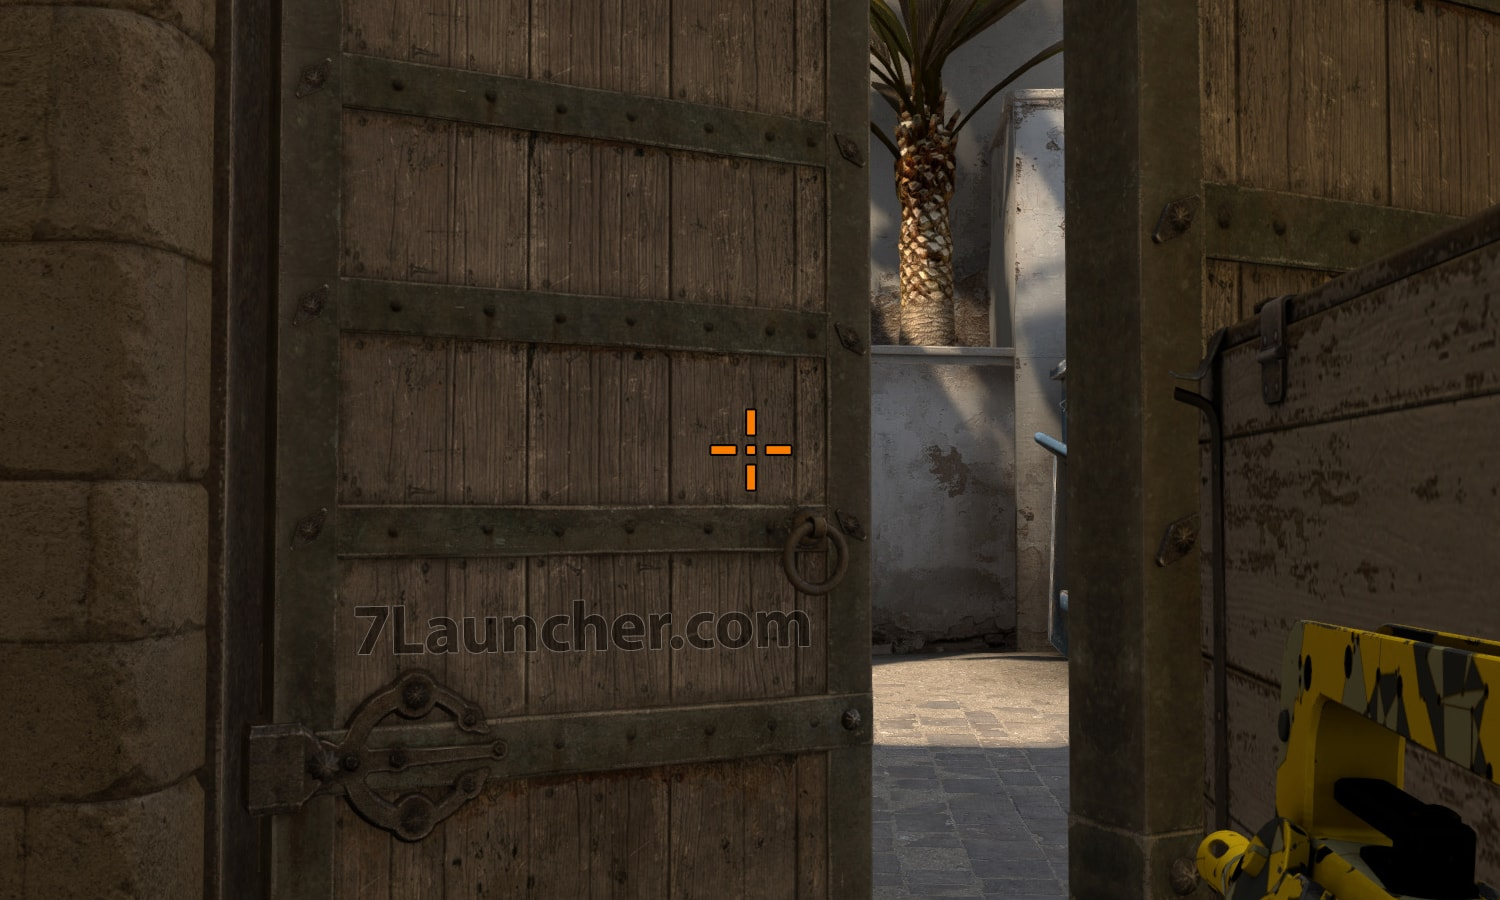 The orange crosshair in CS:GO